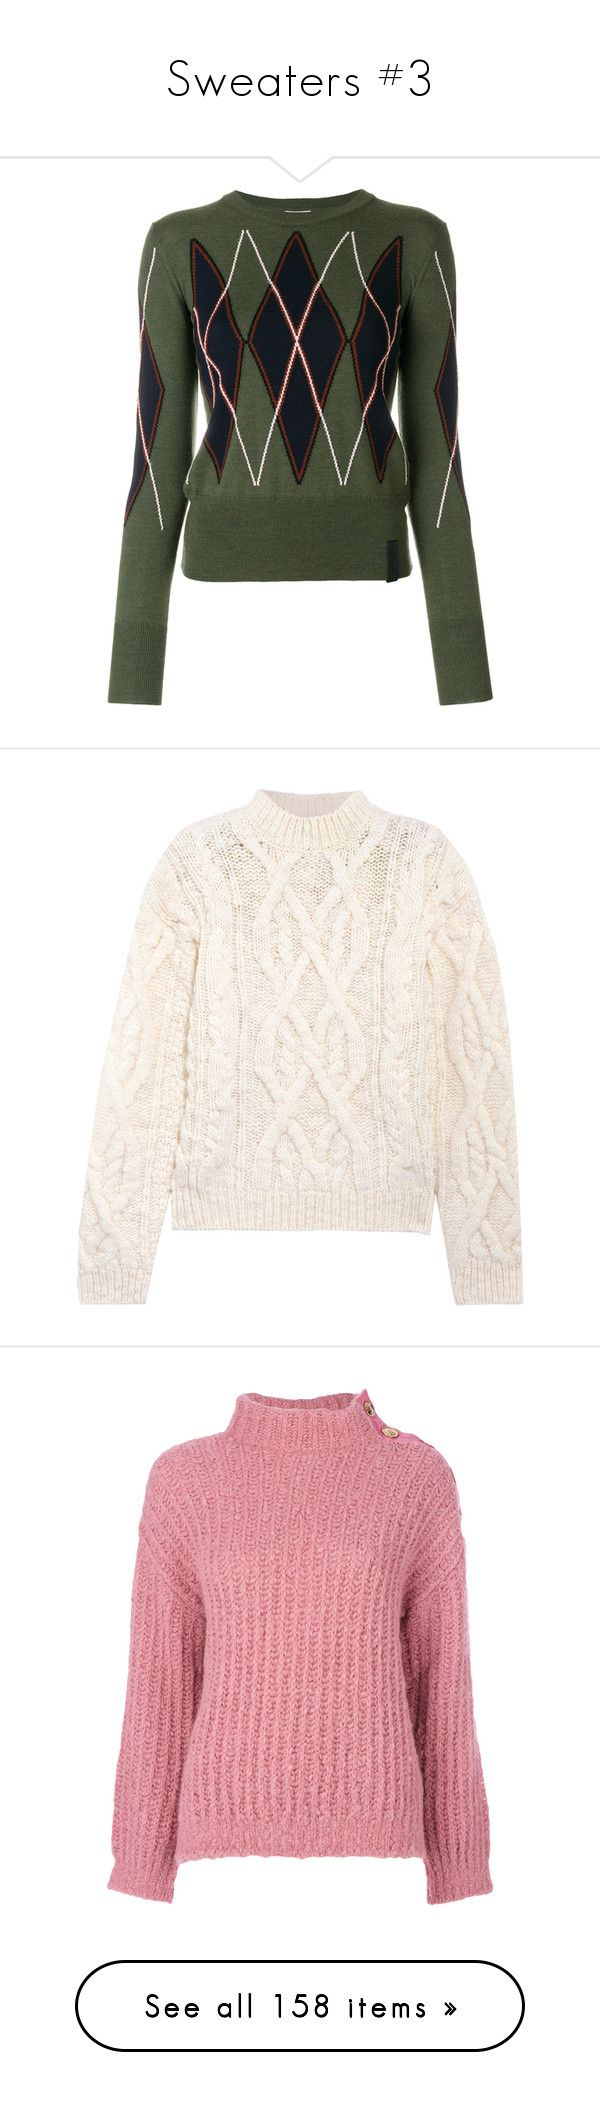 """""""Sweaters #3"""" by webuildbridgesnotwalls ❤ liked on Polyvore featuring tops, sweaters, green, green sweater, green long sleeve top, crew sweater, kenzo jumper, green top, acne and blouses"""